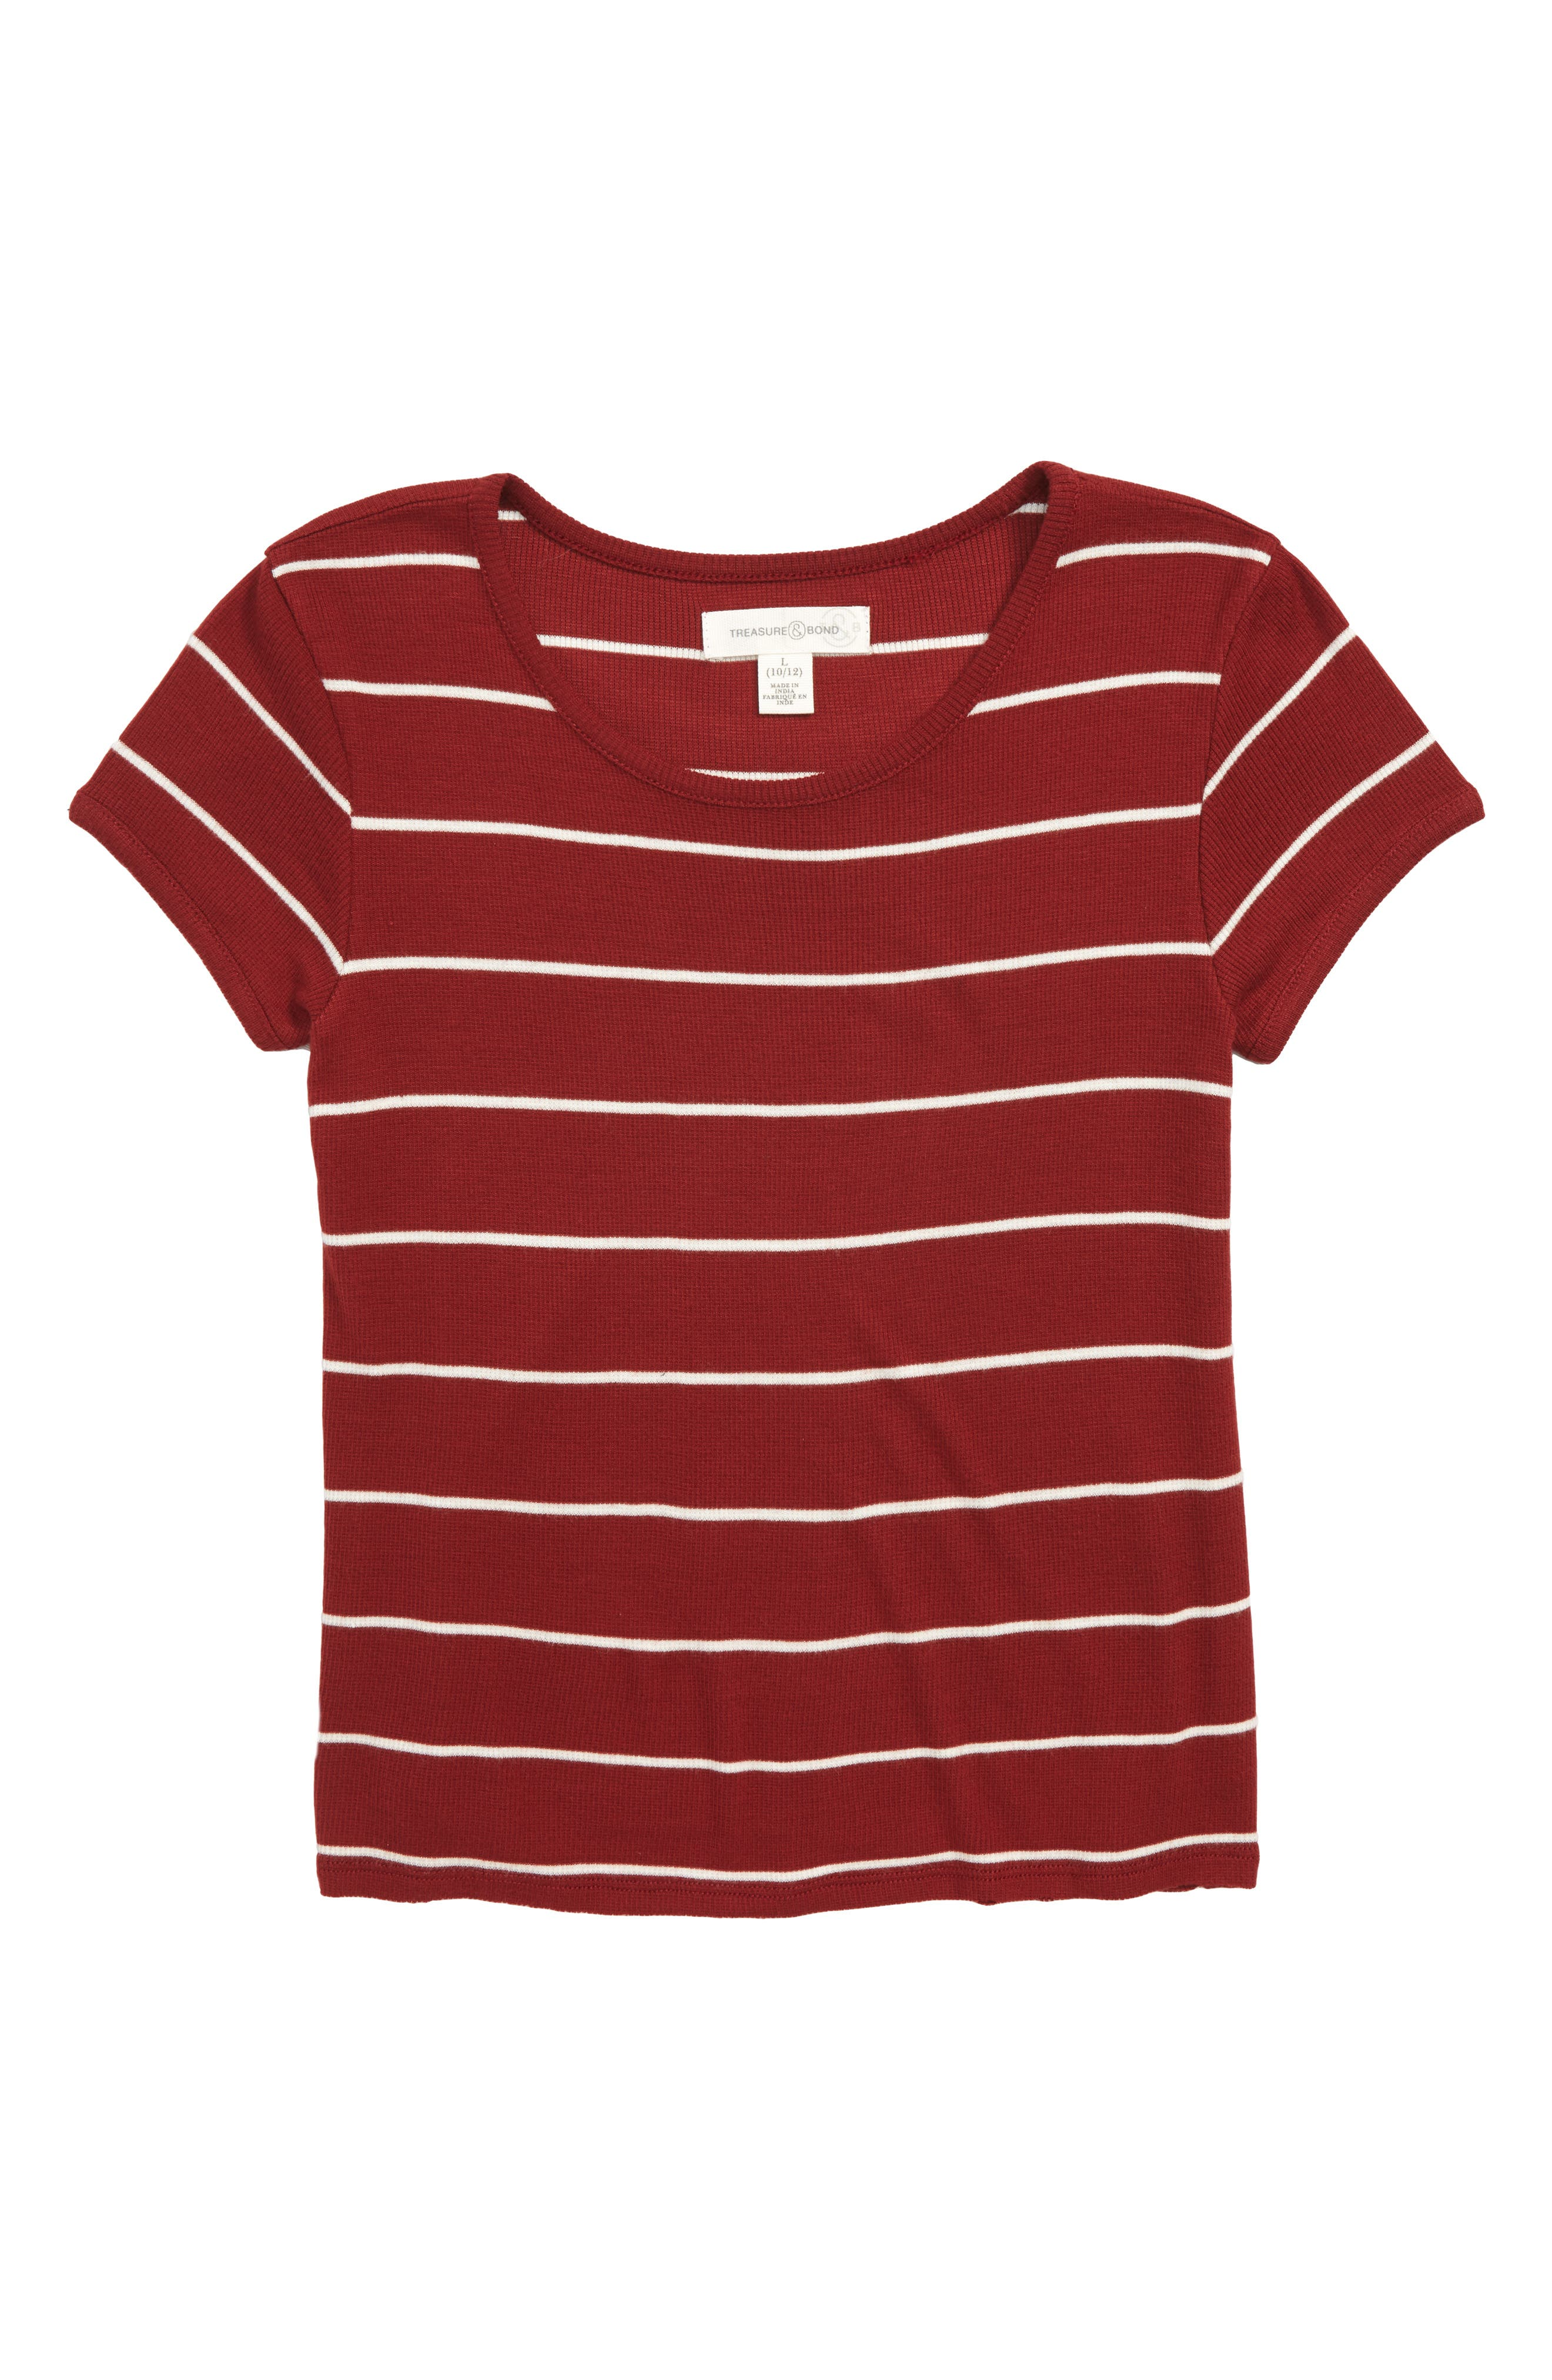 Stripe Knit Tee,                         Main,                         color, Red Rosewood- Ivory Stripe